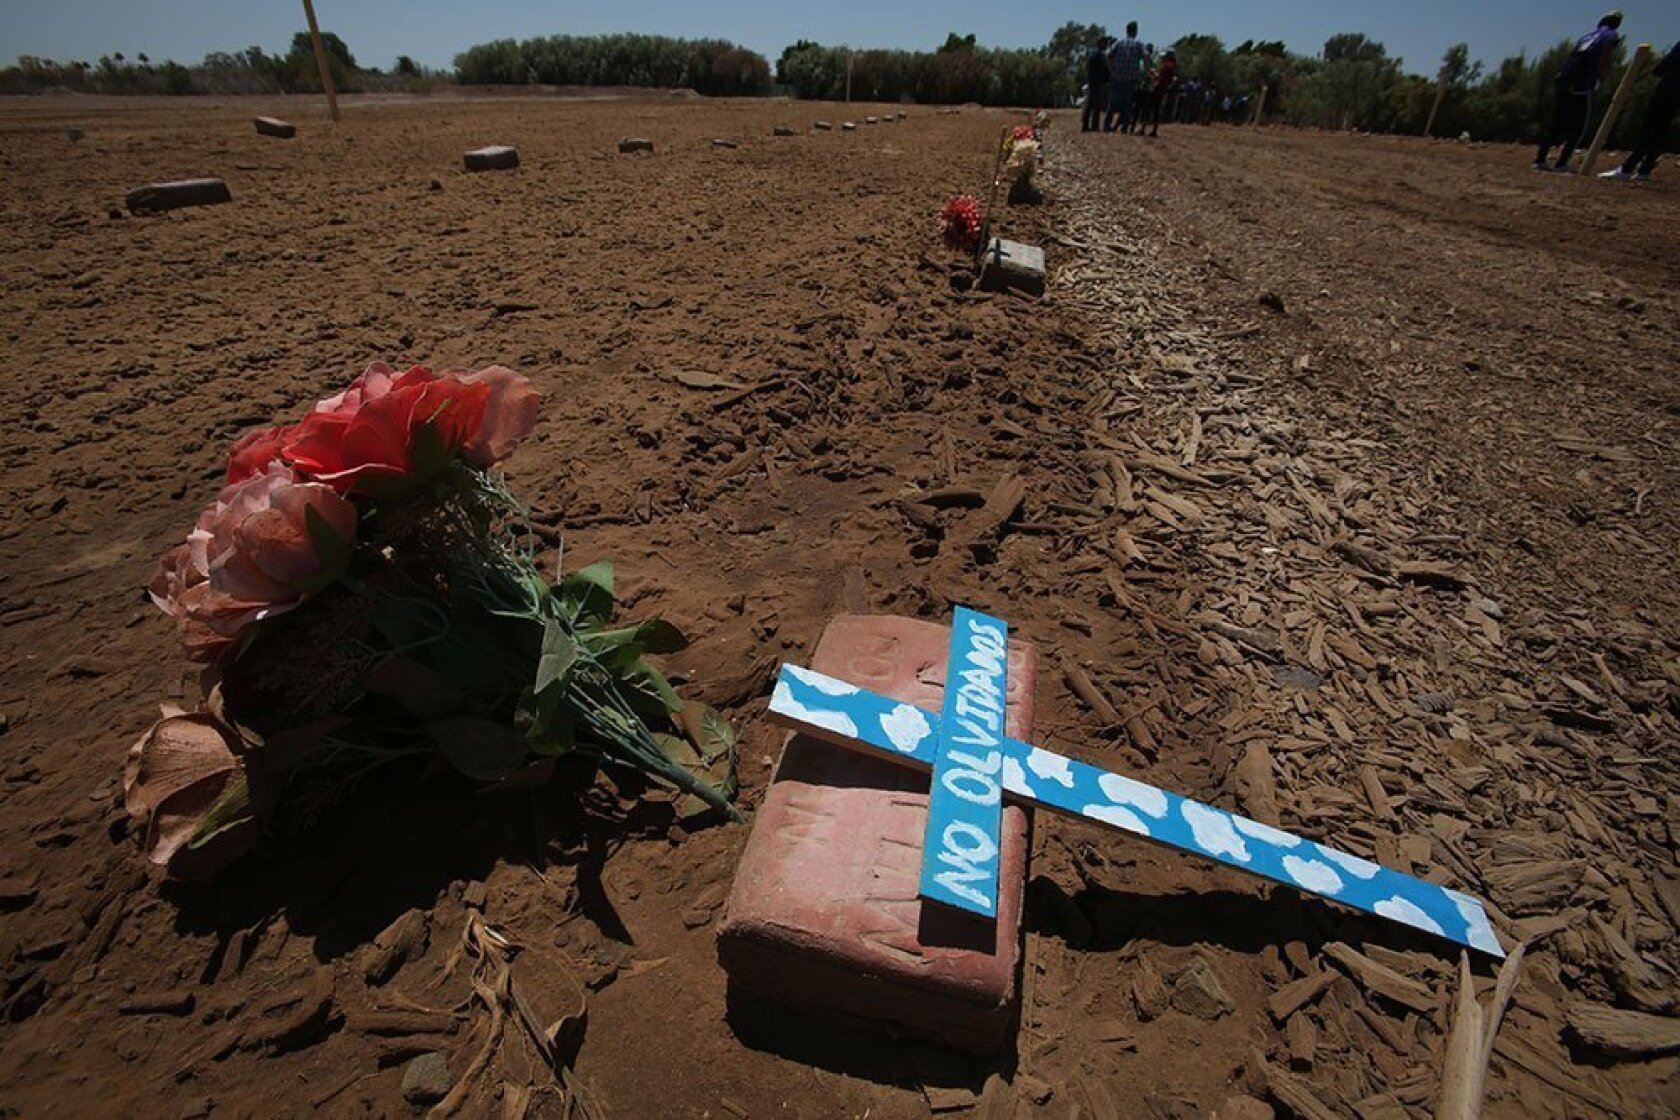 Dirt lot holds remains of deadly migrant crossings - The San Diego